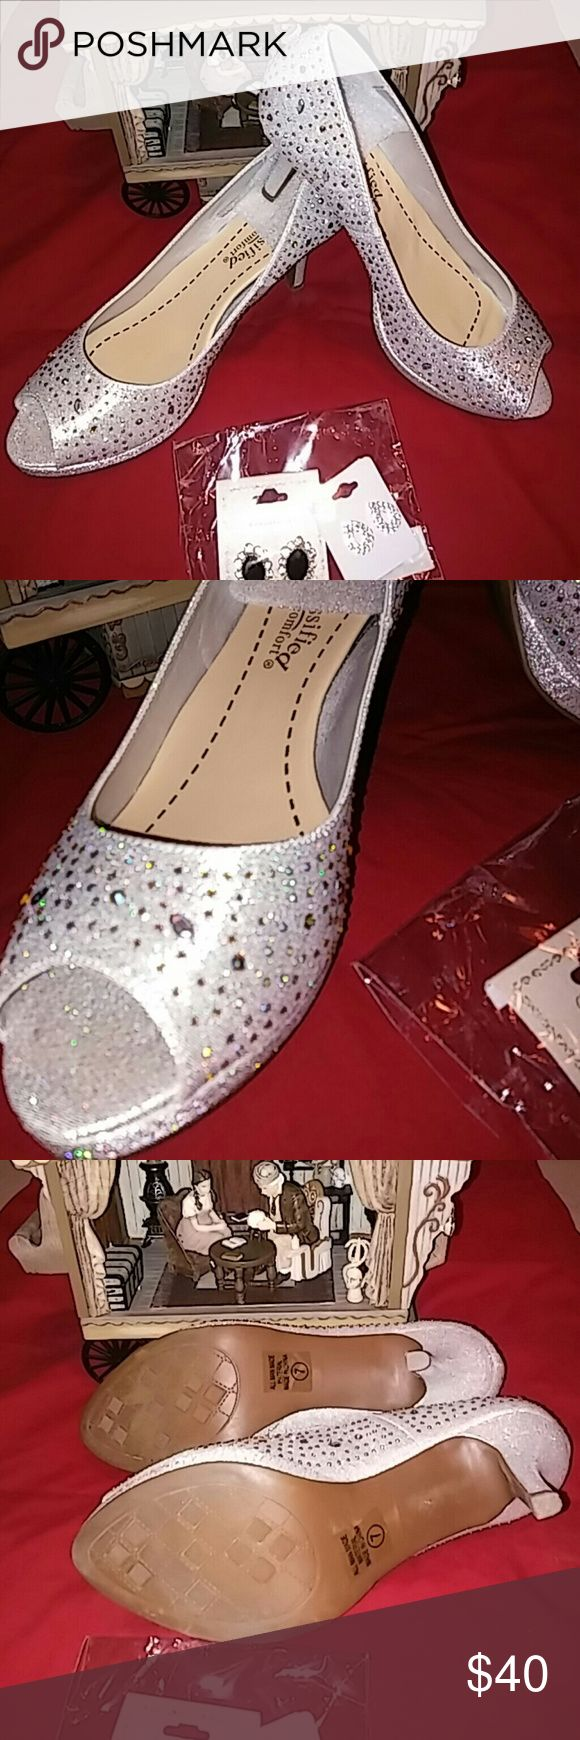 Womans Heel's Beautiful Silver pumps ??.Heel is not to hight with the extra sole. For an even comforting. Has a glittering with some Bling.will add the earrings. Only was used for an hour. For more information regarding this items please ask Thanks. Shoes Heels